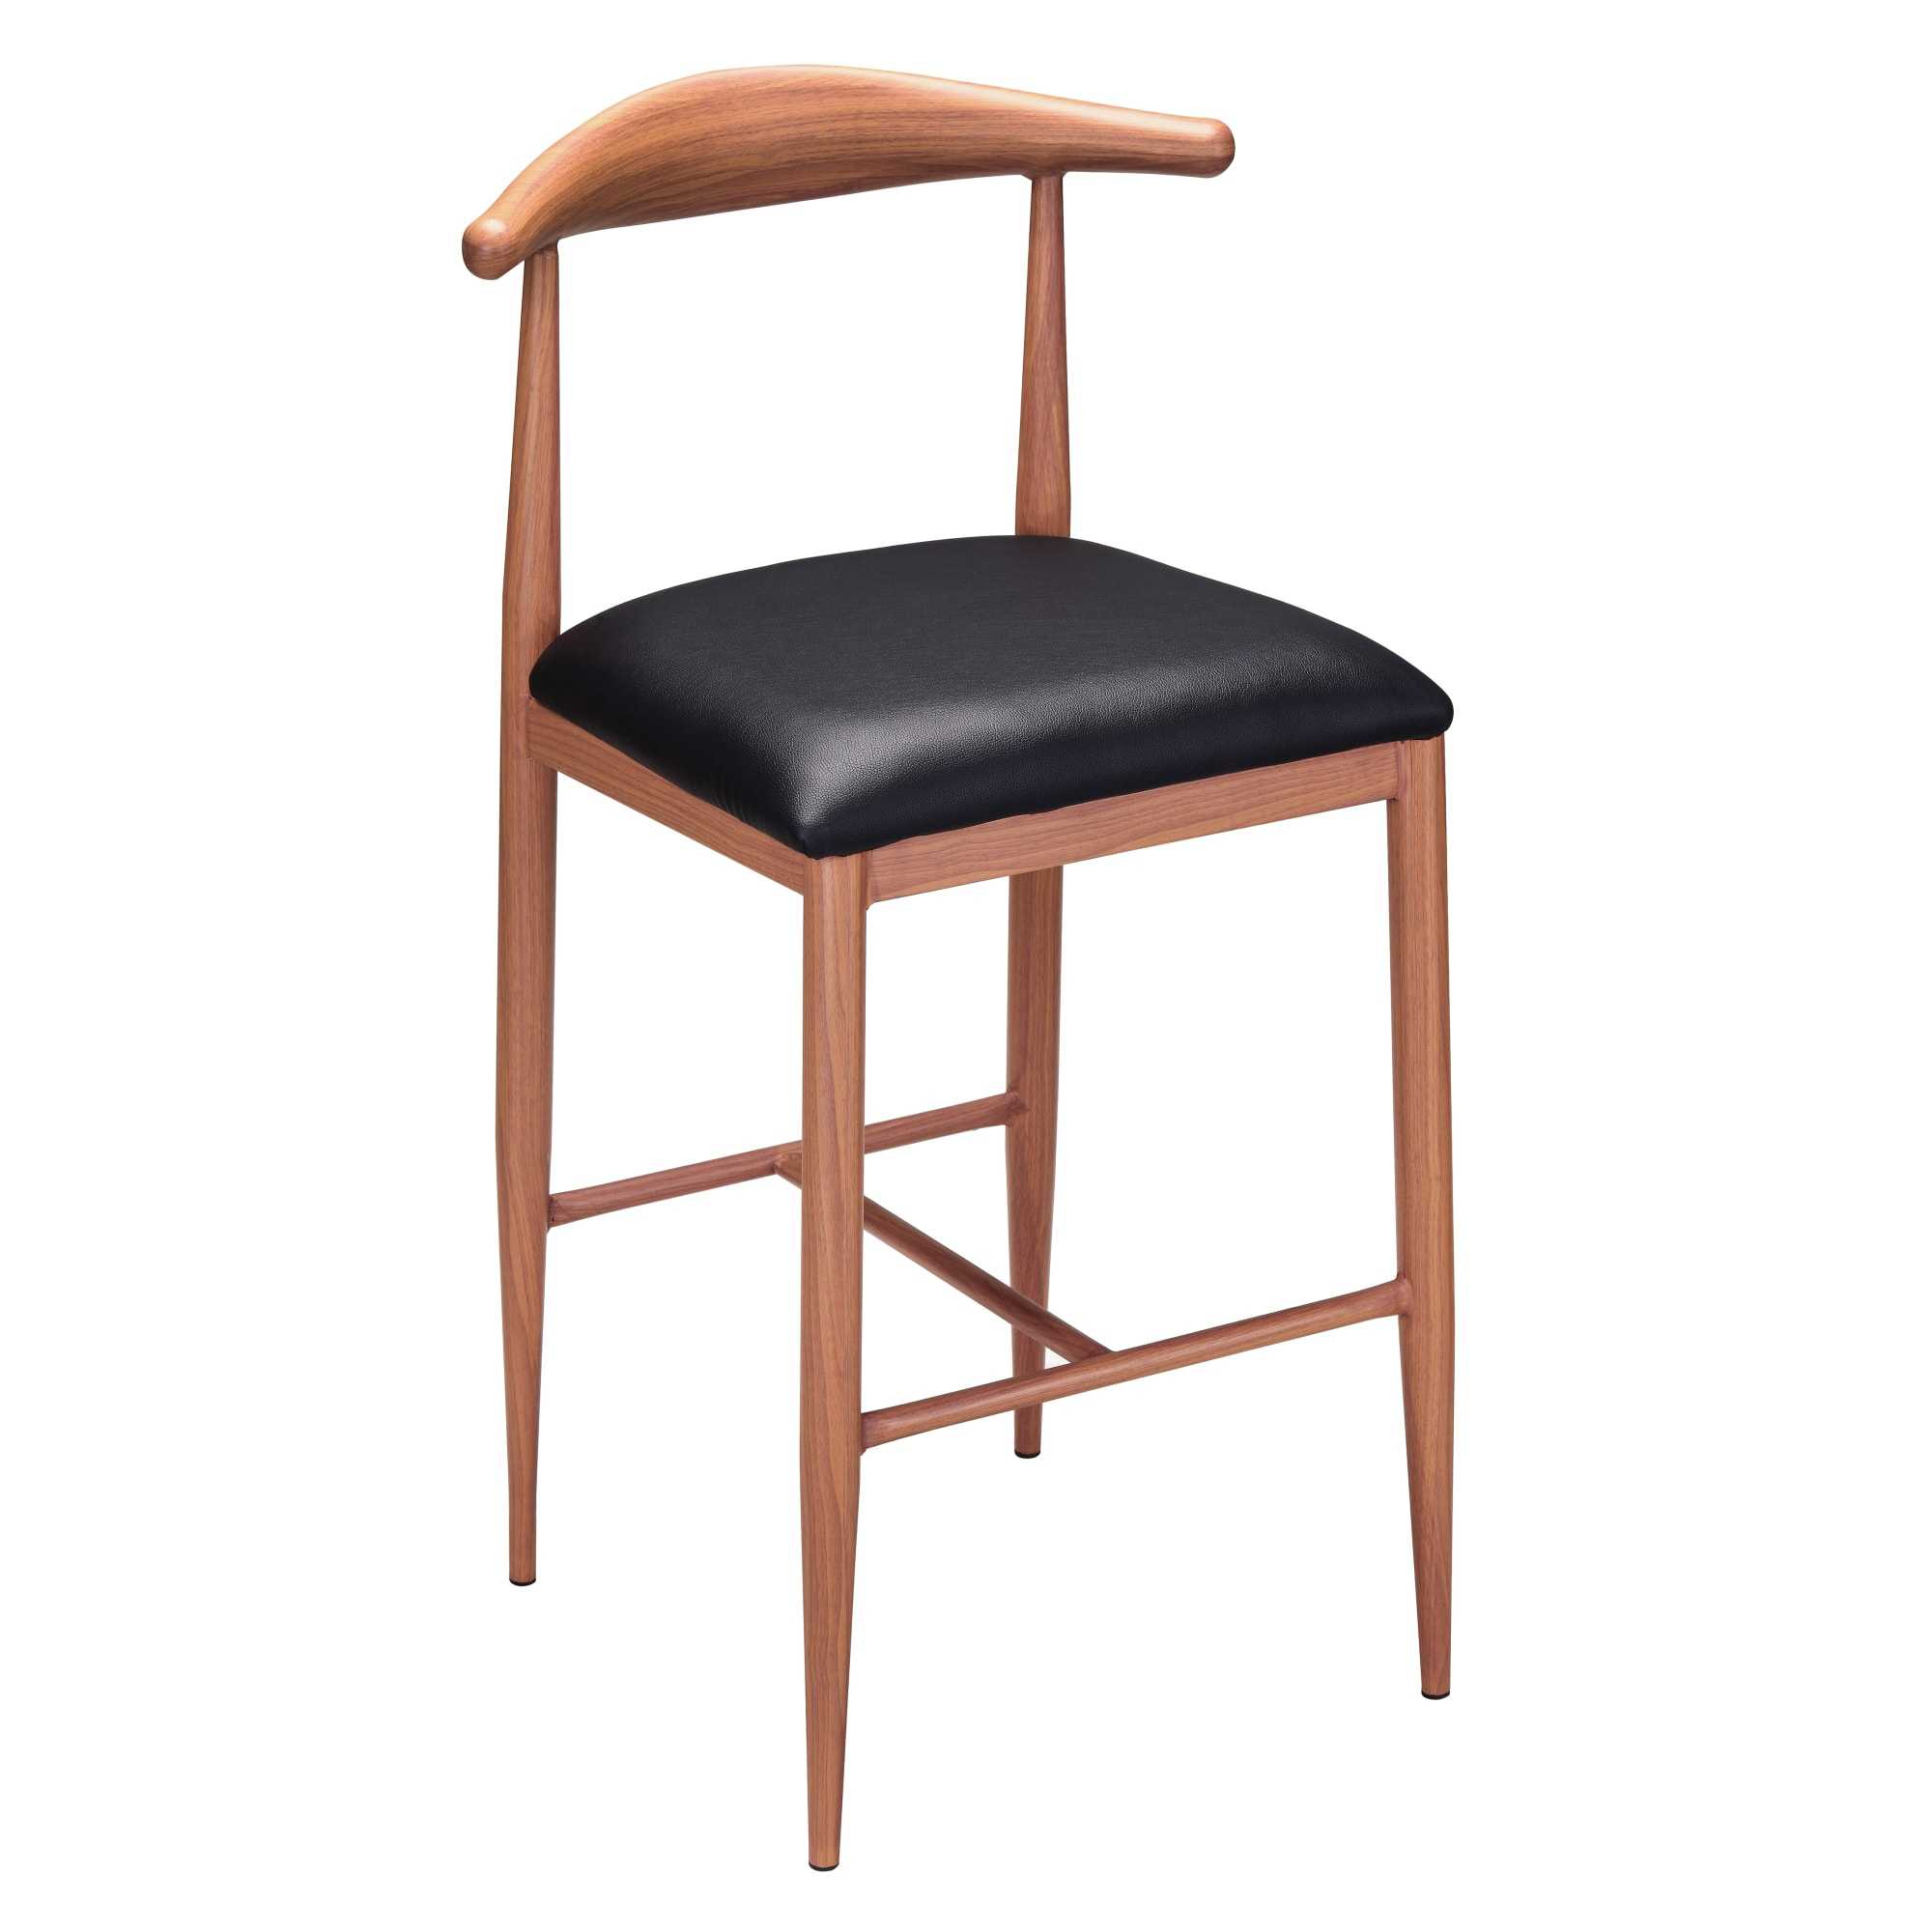 Wood Grain Metal Bar Stool in Walnut Finish & Black Vinyl Seat with Wood Grain Metal Bar Stool in Walnut Finish & Black Vinyl Seat